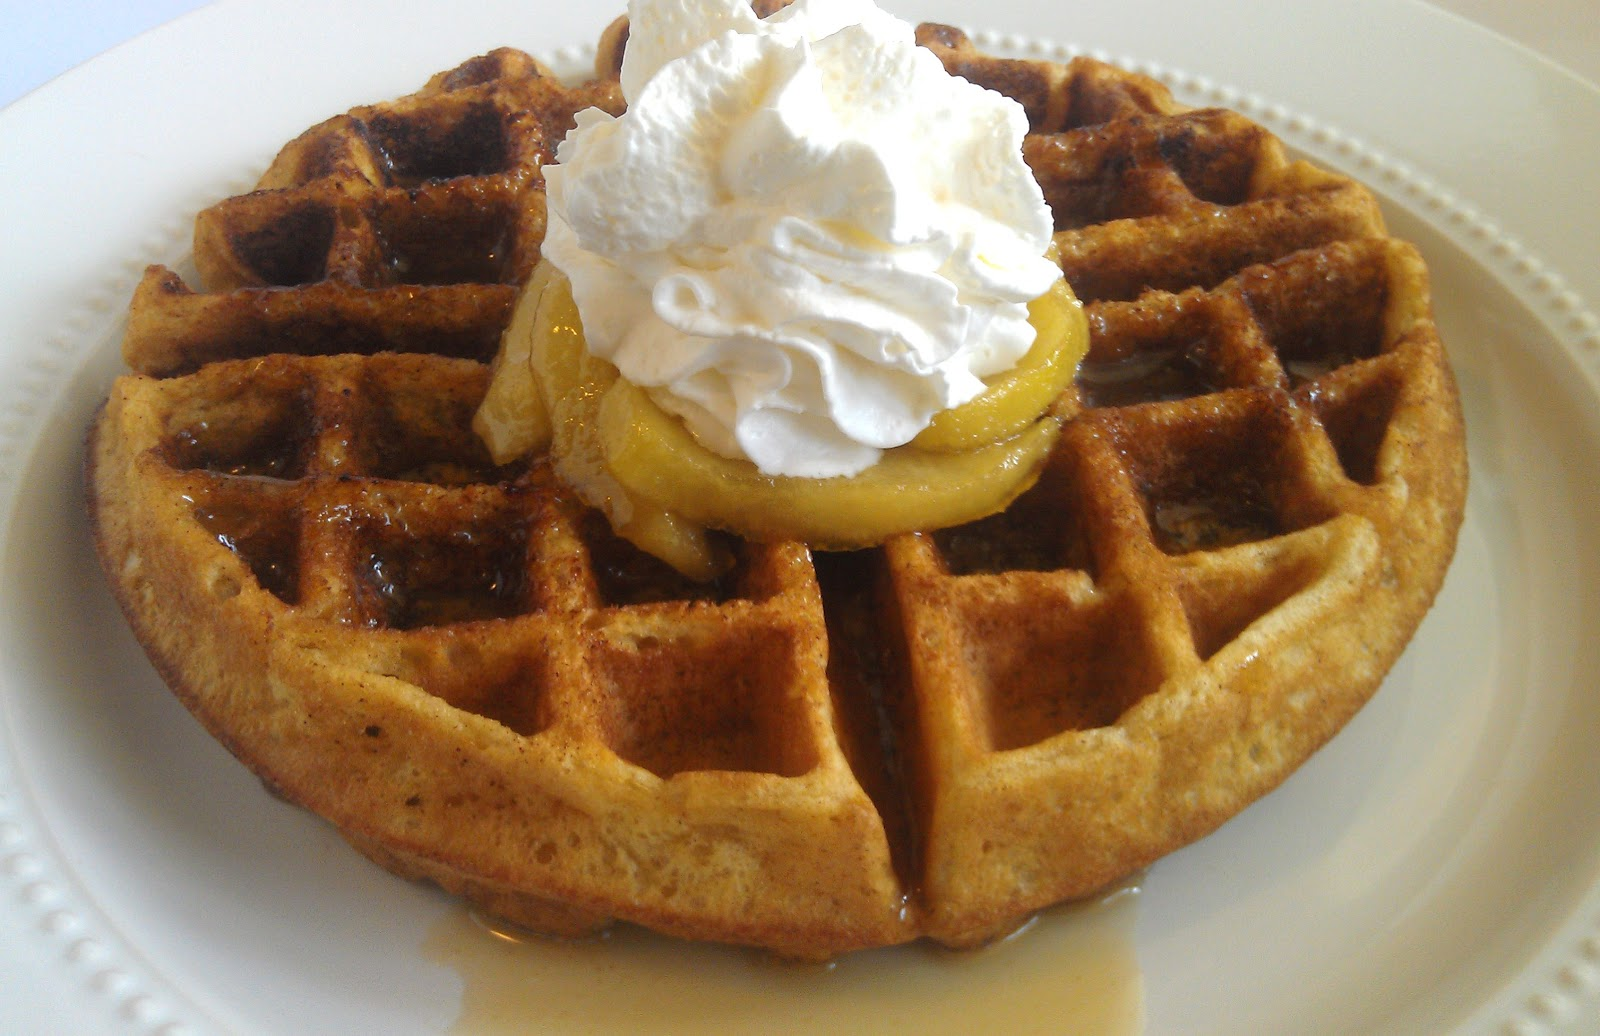 Girl + Food = Love: Cinnamon Sugar Waffles with Caramel Apple Syrup